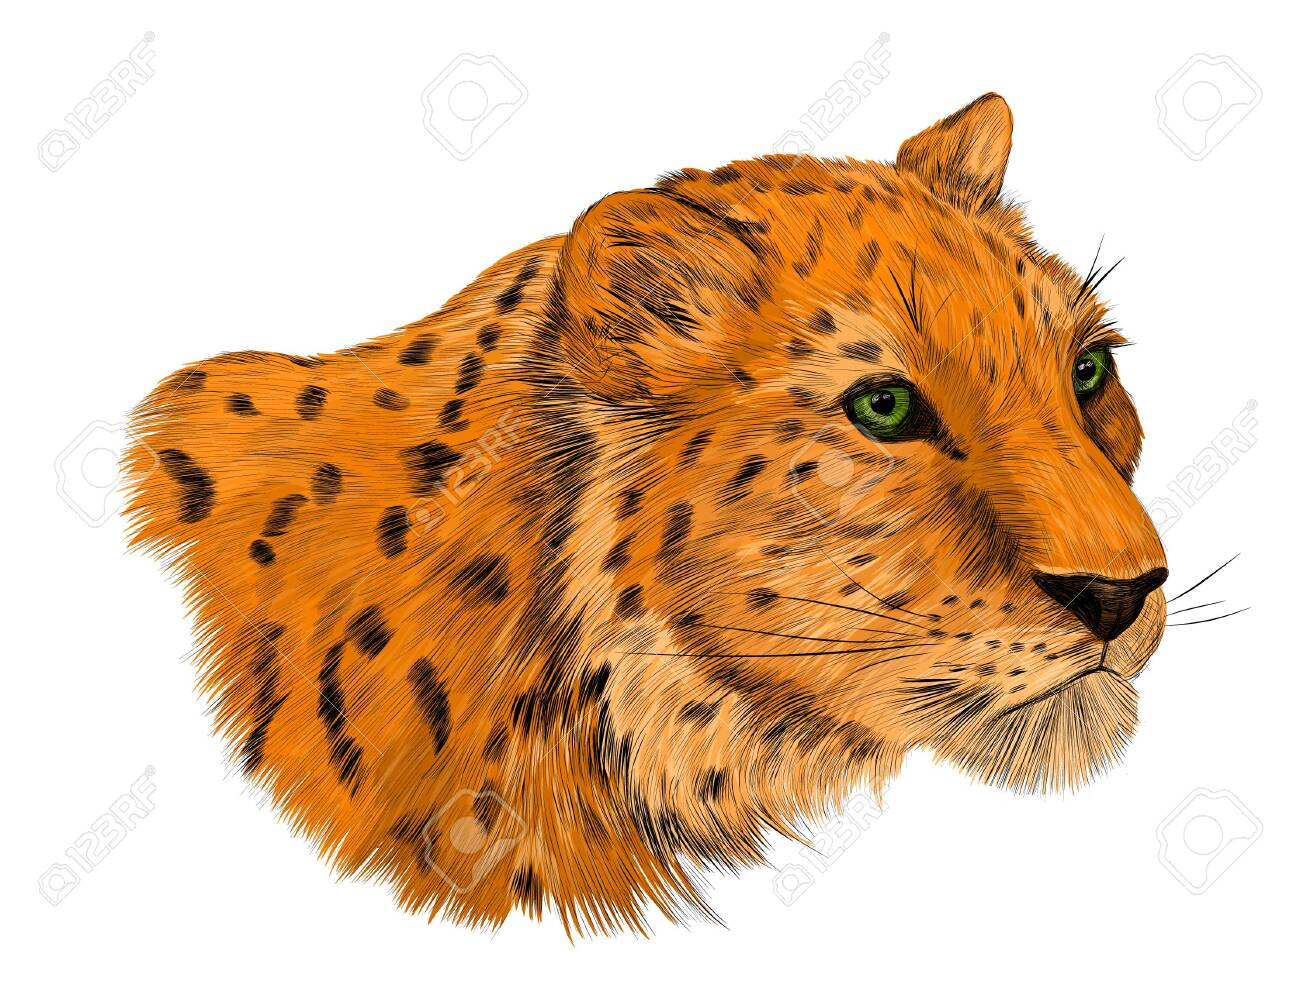 leopard animal of Africa with spots - 141190410